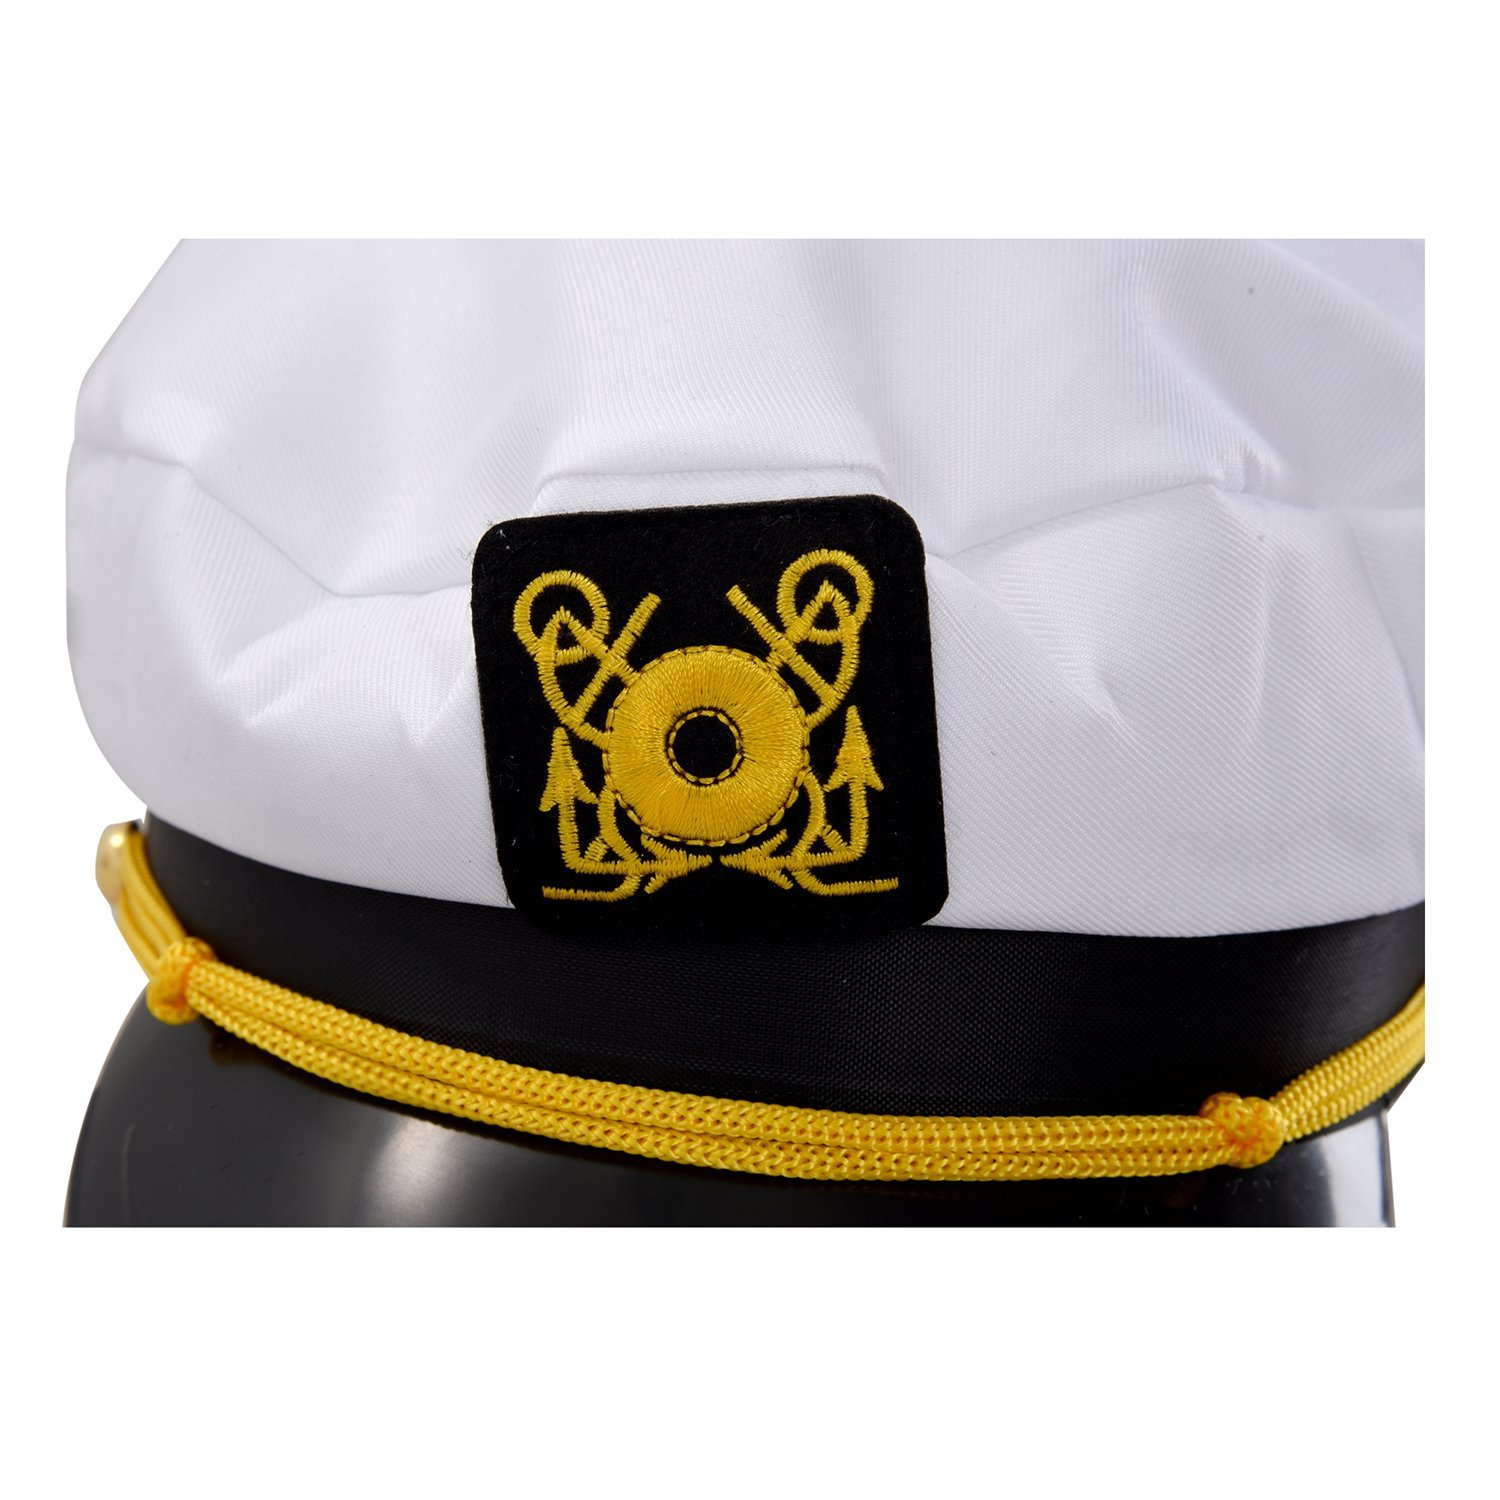 Amazon.com: White Navy Sailor Cap - TOOGOO(R)White Navy Sailor Cap Captain Marino Marin Uniform Cotton Color White Black: Sports & Outdoors